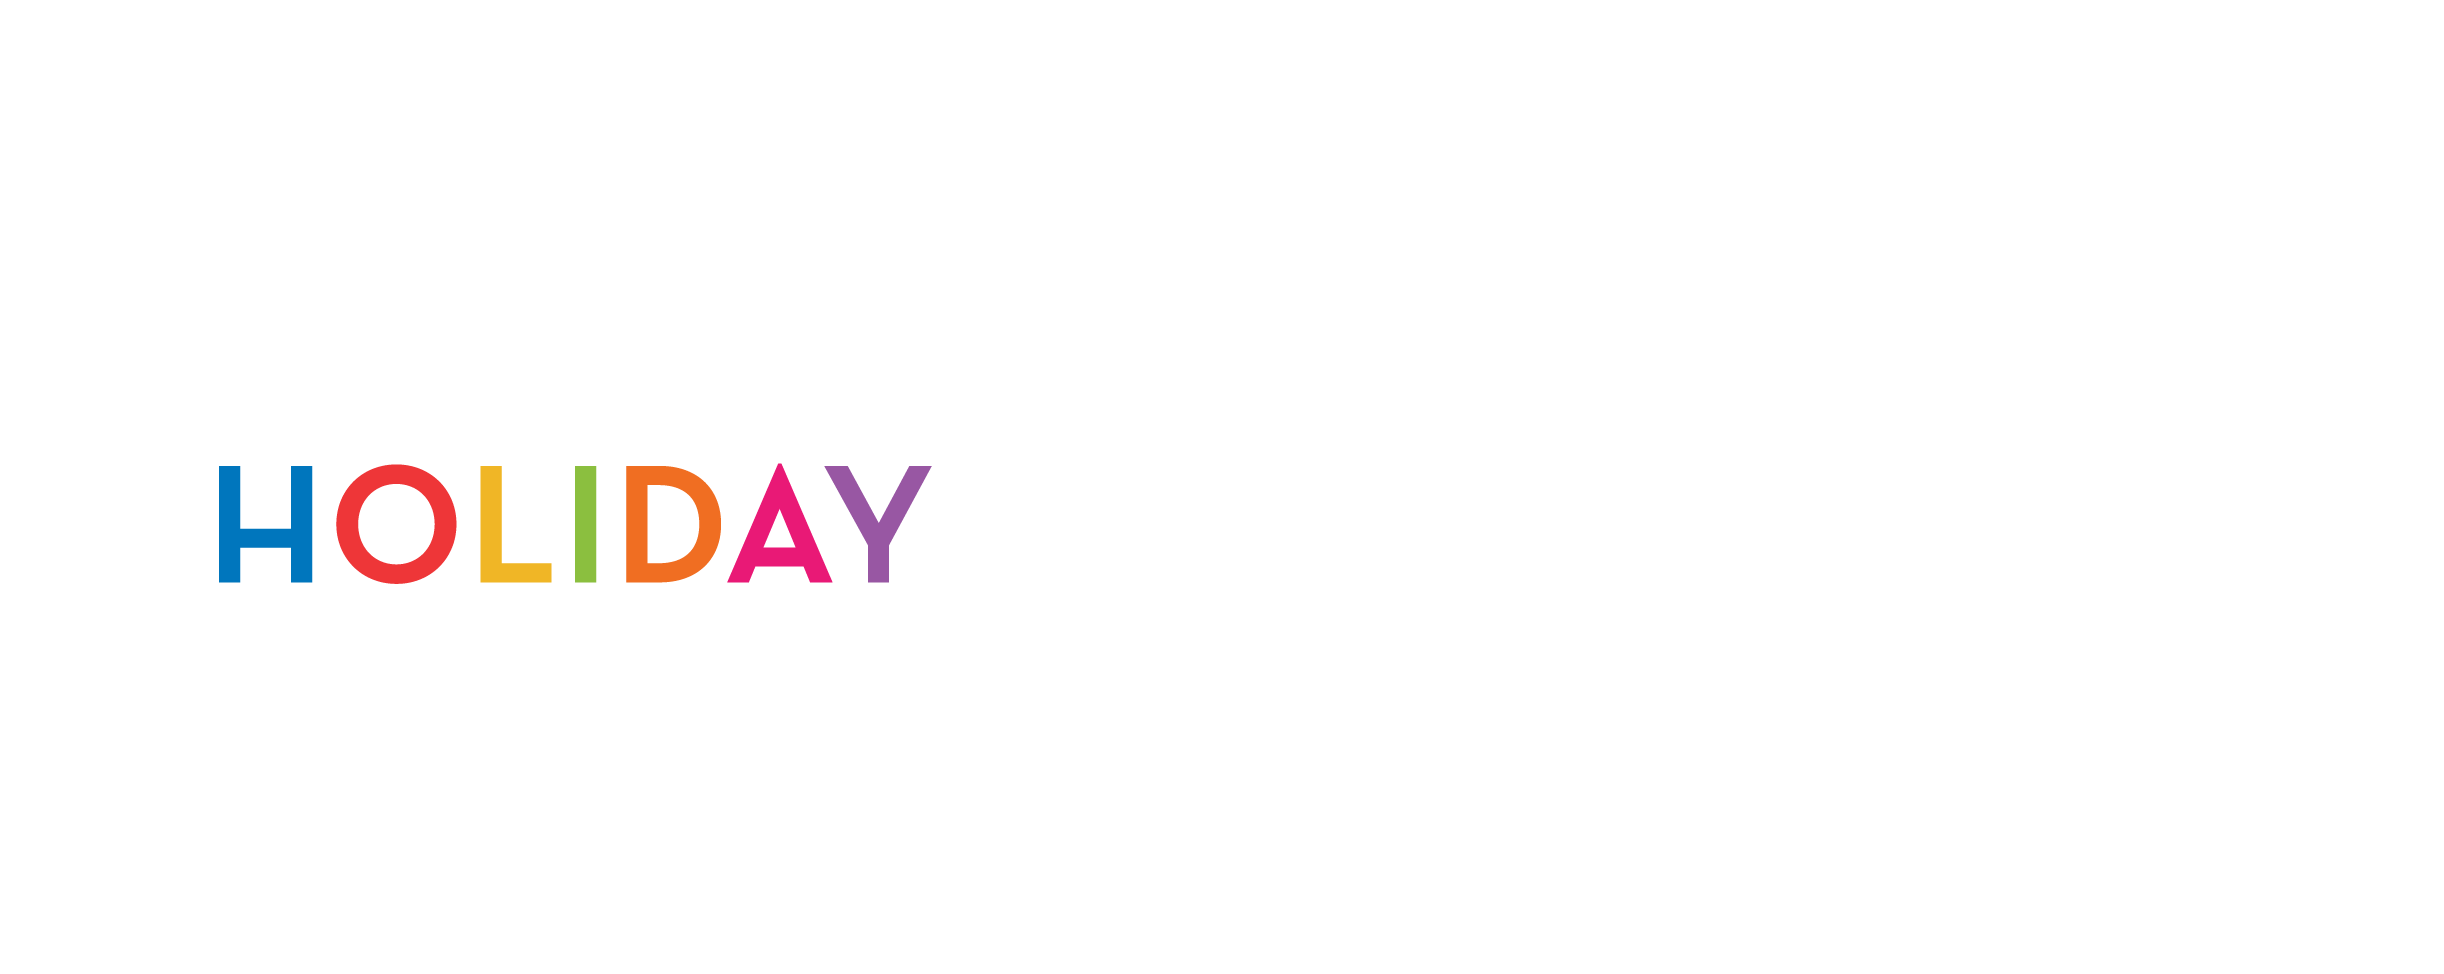 Join the Seagram's Escapes Holiday Marketplace